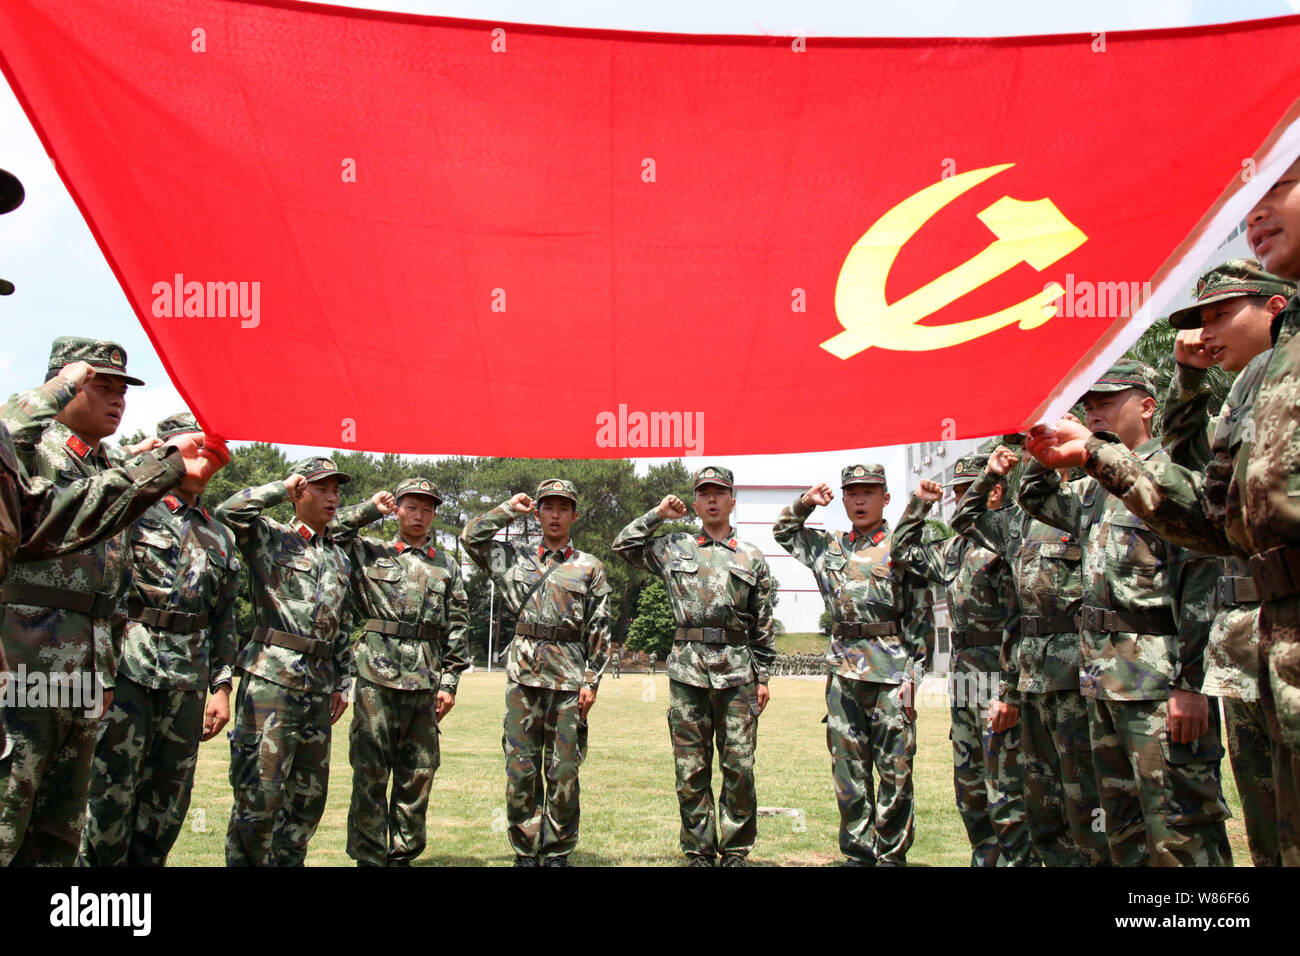 The 95th anniversary of the founding of the communist party of China.